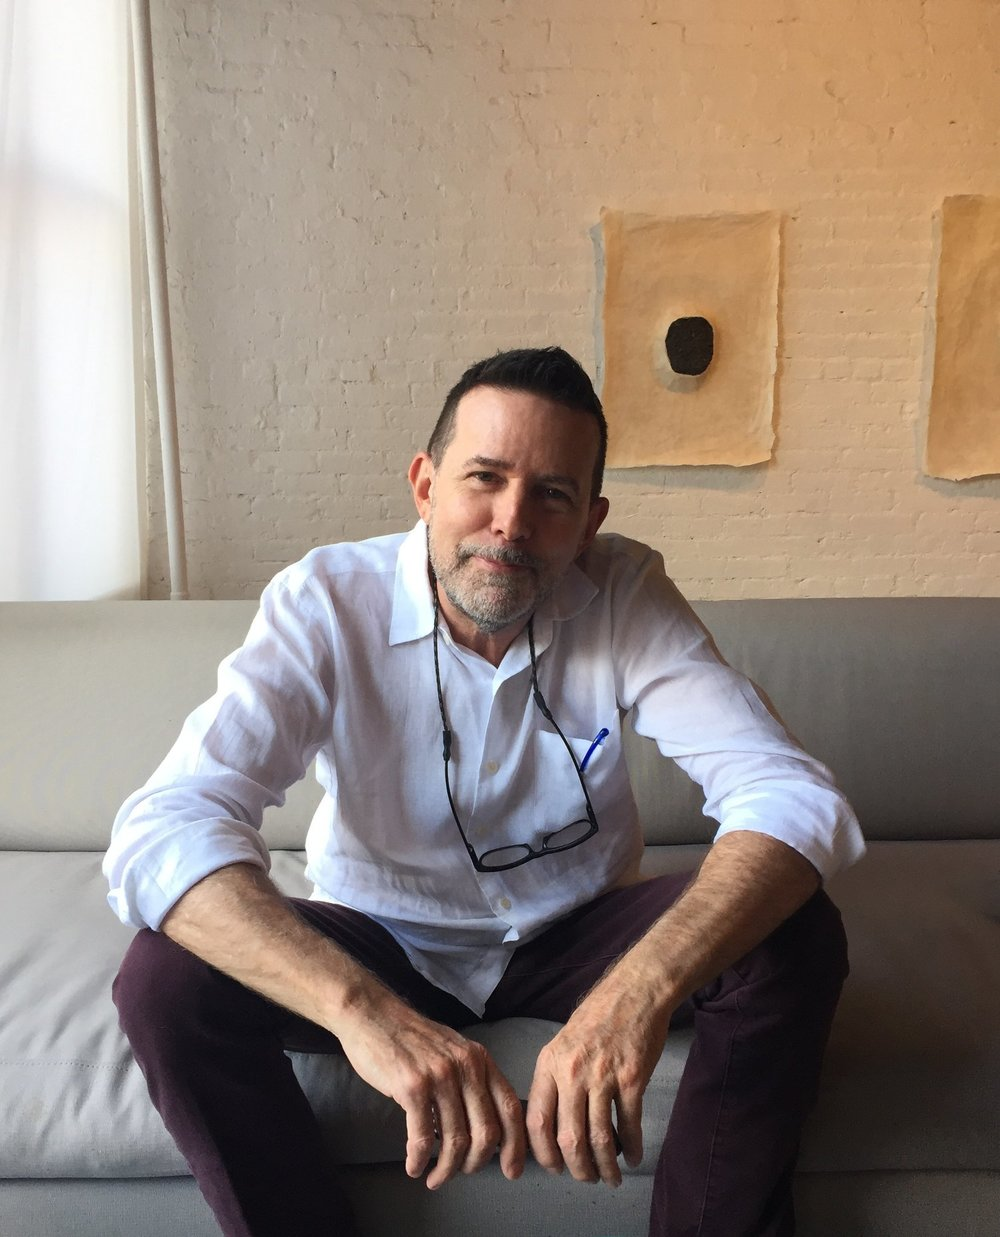 John Guthrie - John earned a BS in aerospace engineering from the University of Cincinnati and a BFA in painting from the Massachusetts College of Art. His work has been exhibited at the Boston University Art Gallery, Circuit 12 Contemporary in Dallas, and Kate Werbel Gallery in NYC, and was recently acquired by the Addison Gallery of American Art. In 2016 he opened gallery VERY in Boston's South End.